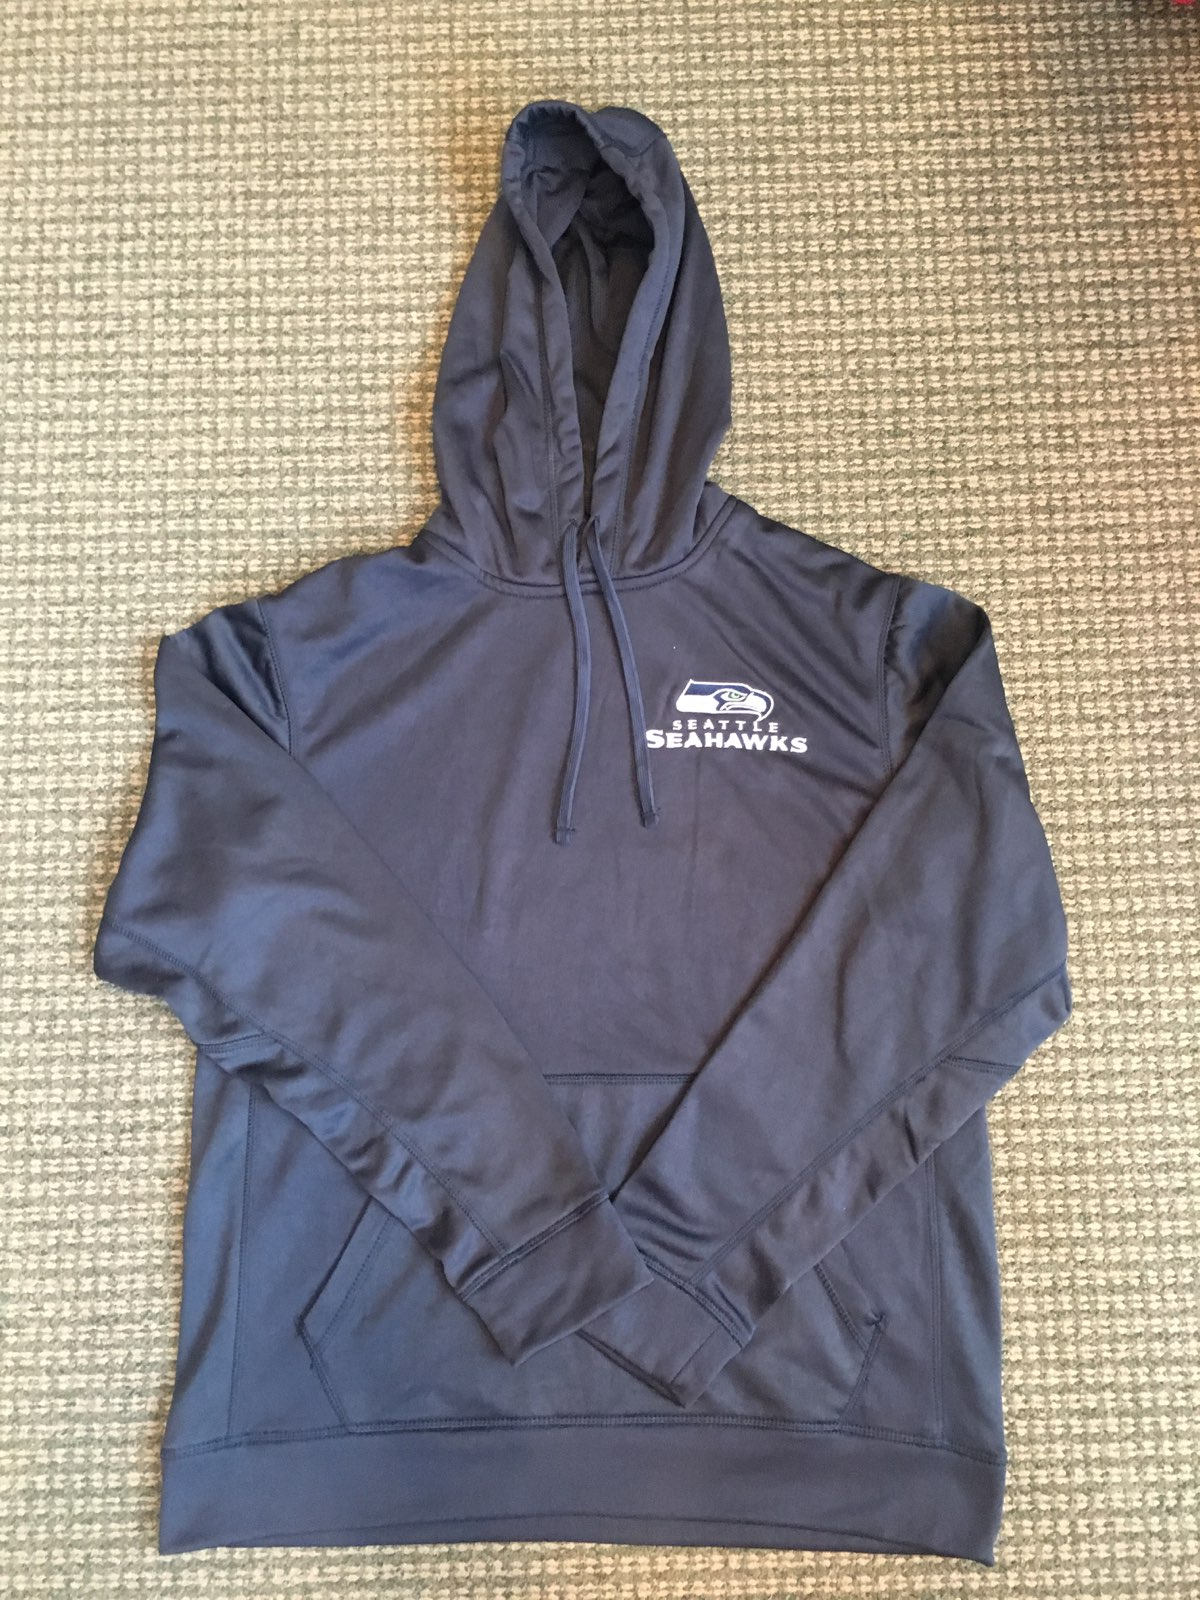 Seahawks Dunbrooke Hoodie Navy , 100% Polyester Size Medium